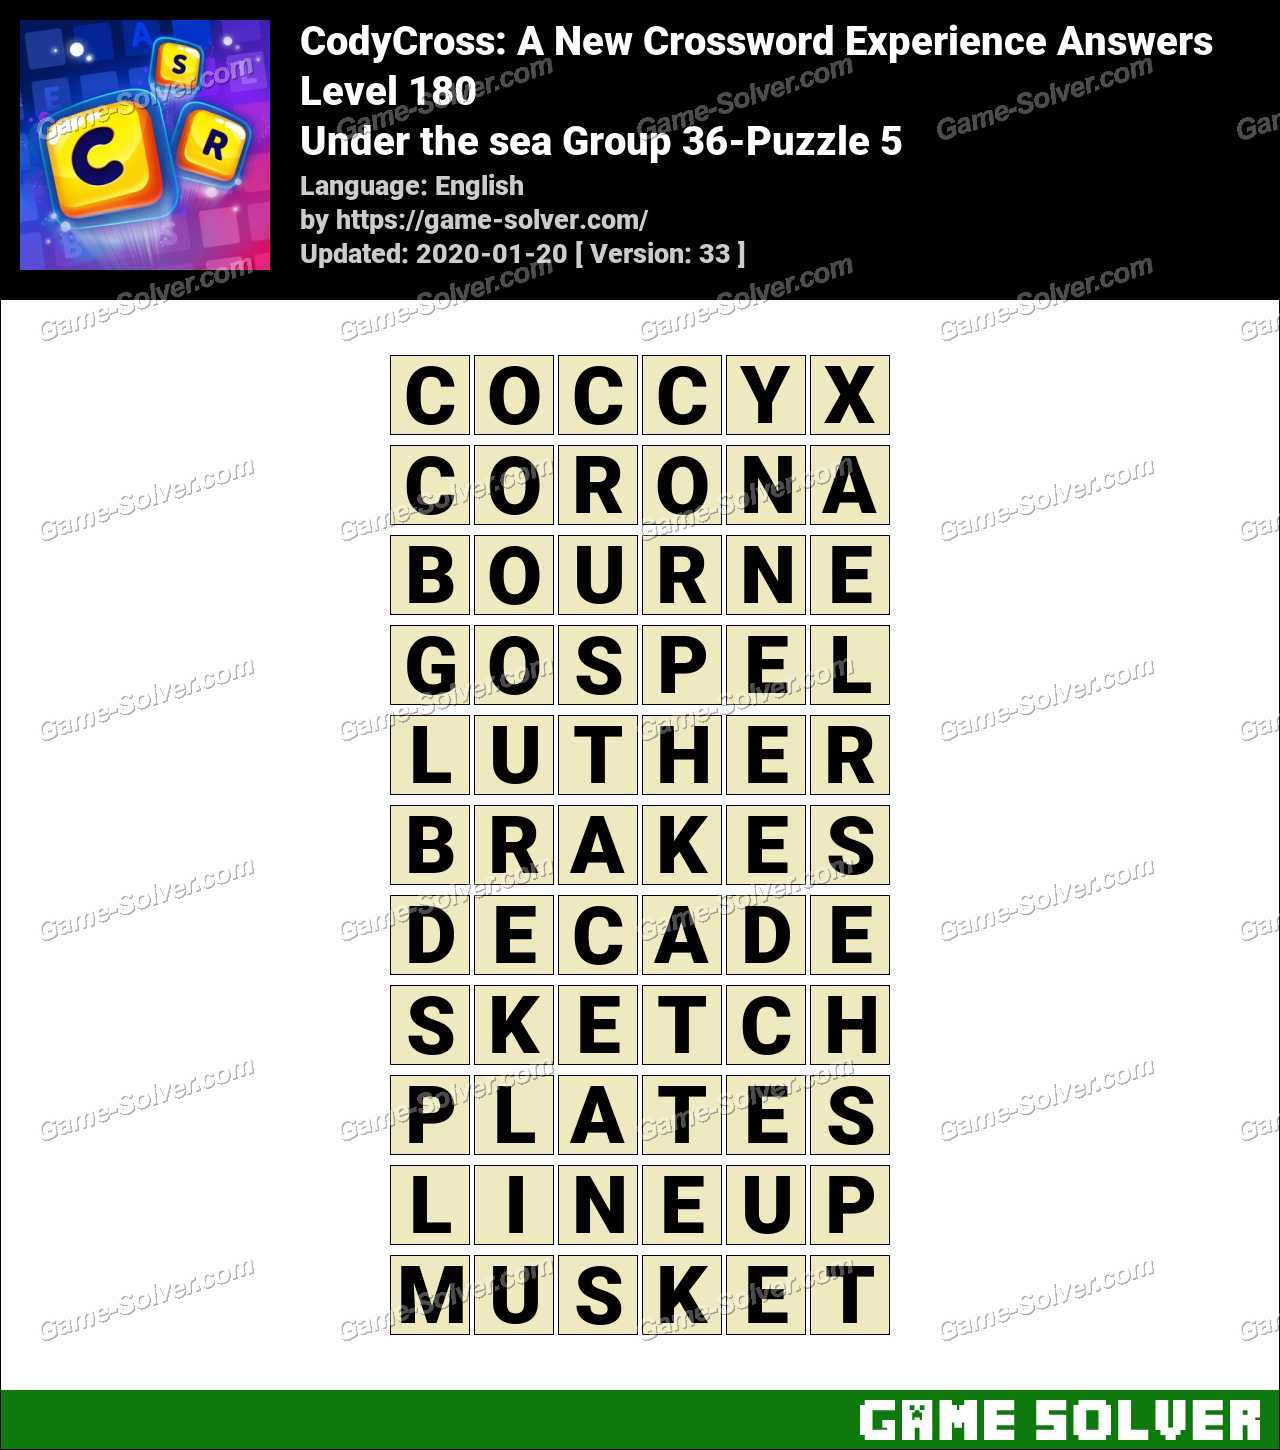 CodyCross Under the sea Group 36-Puzzle 5 Answers